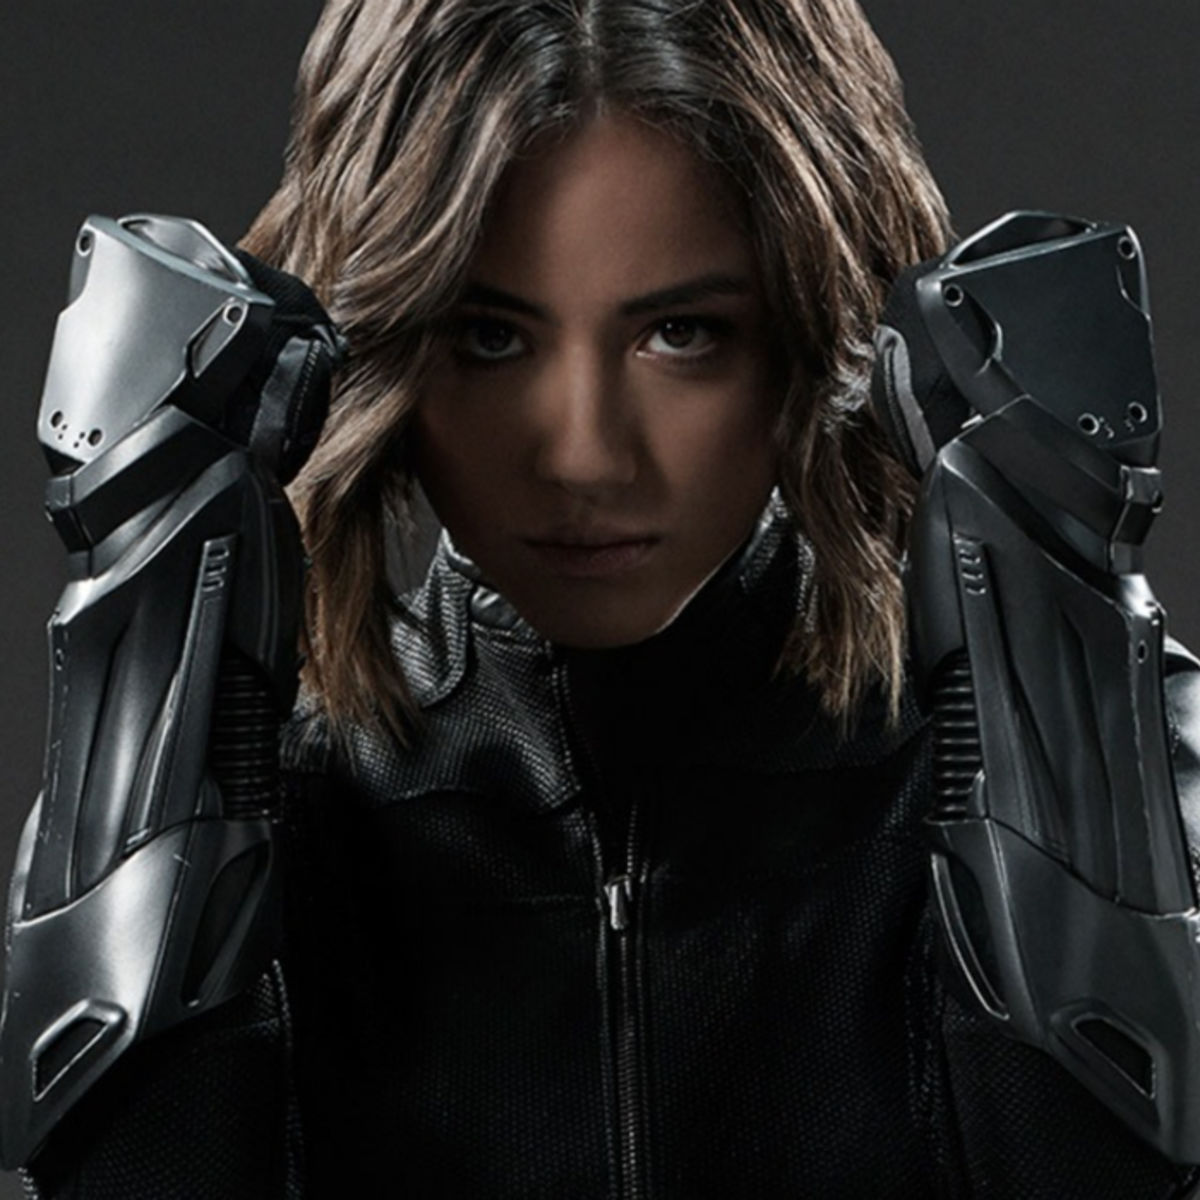 agents-shield-season-4-daisy-chloe-bennet.jpg